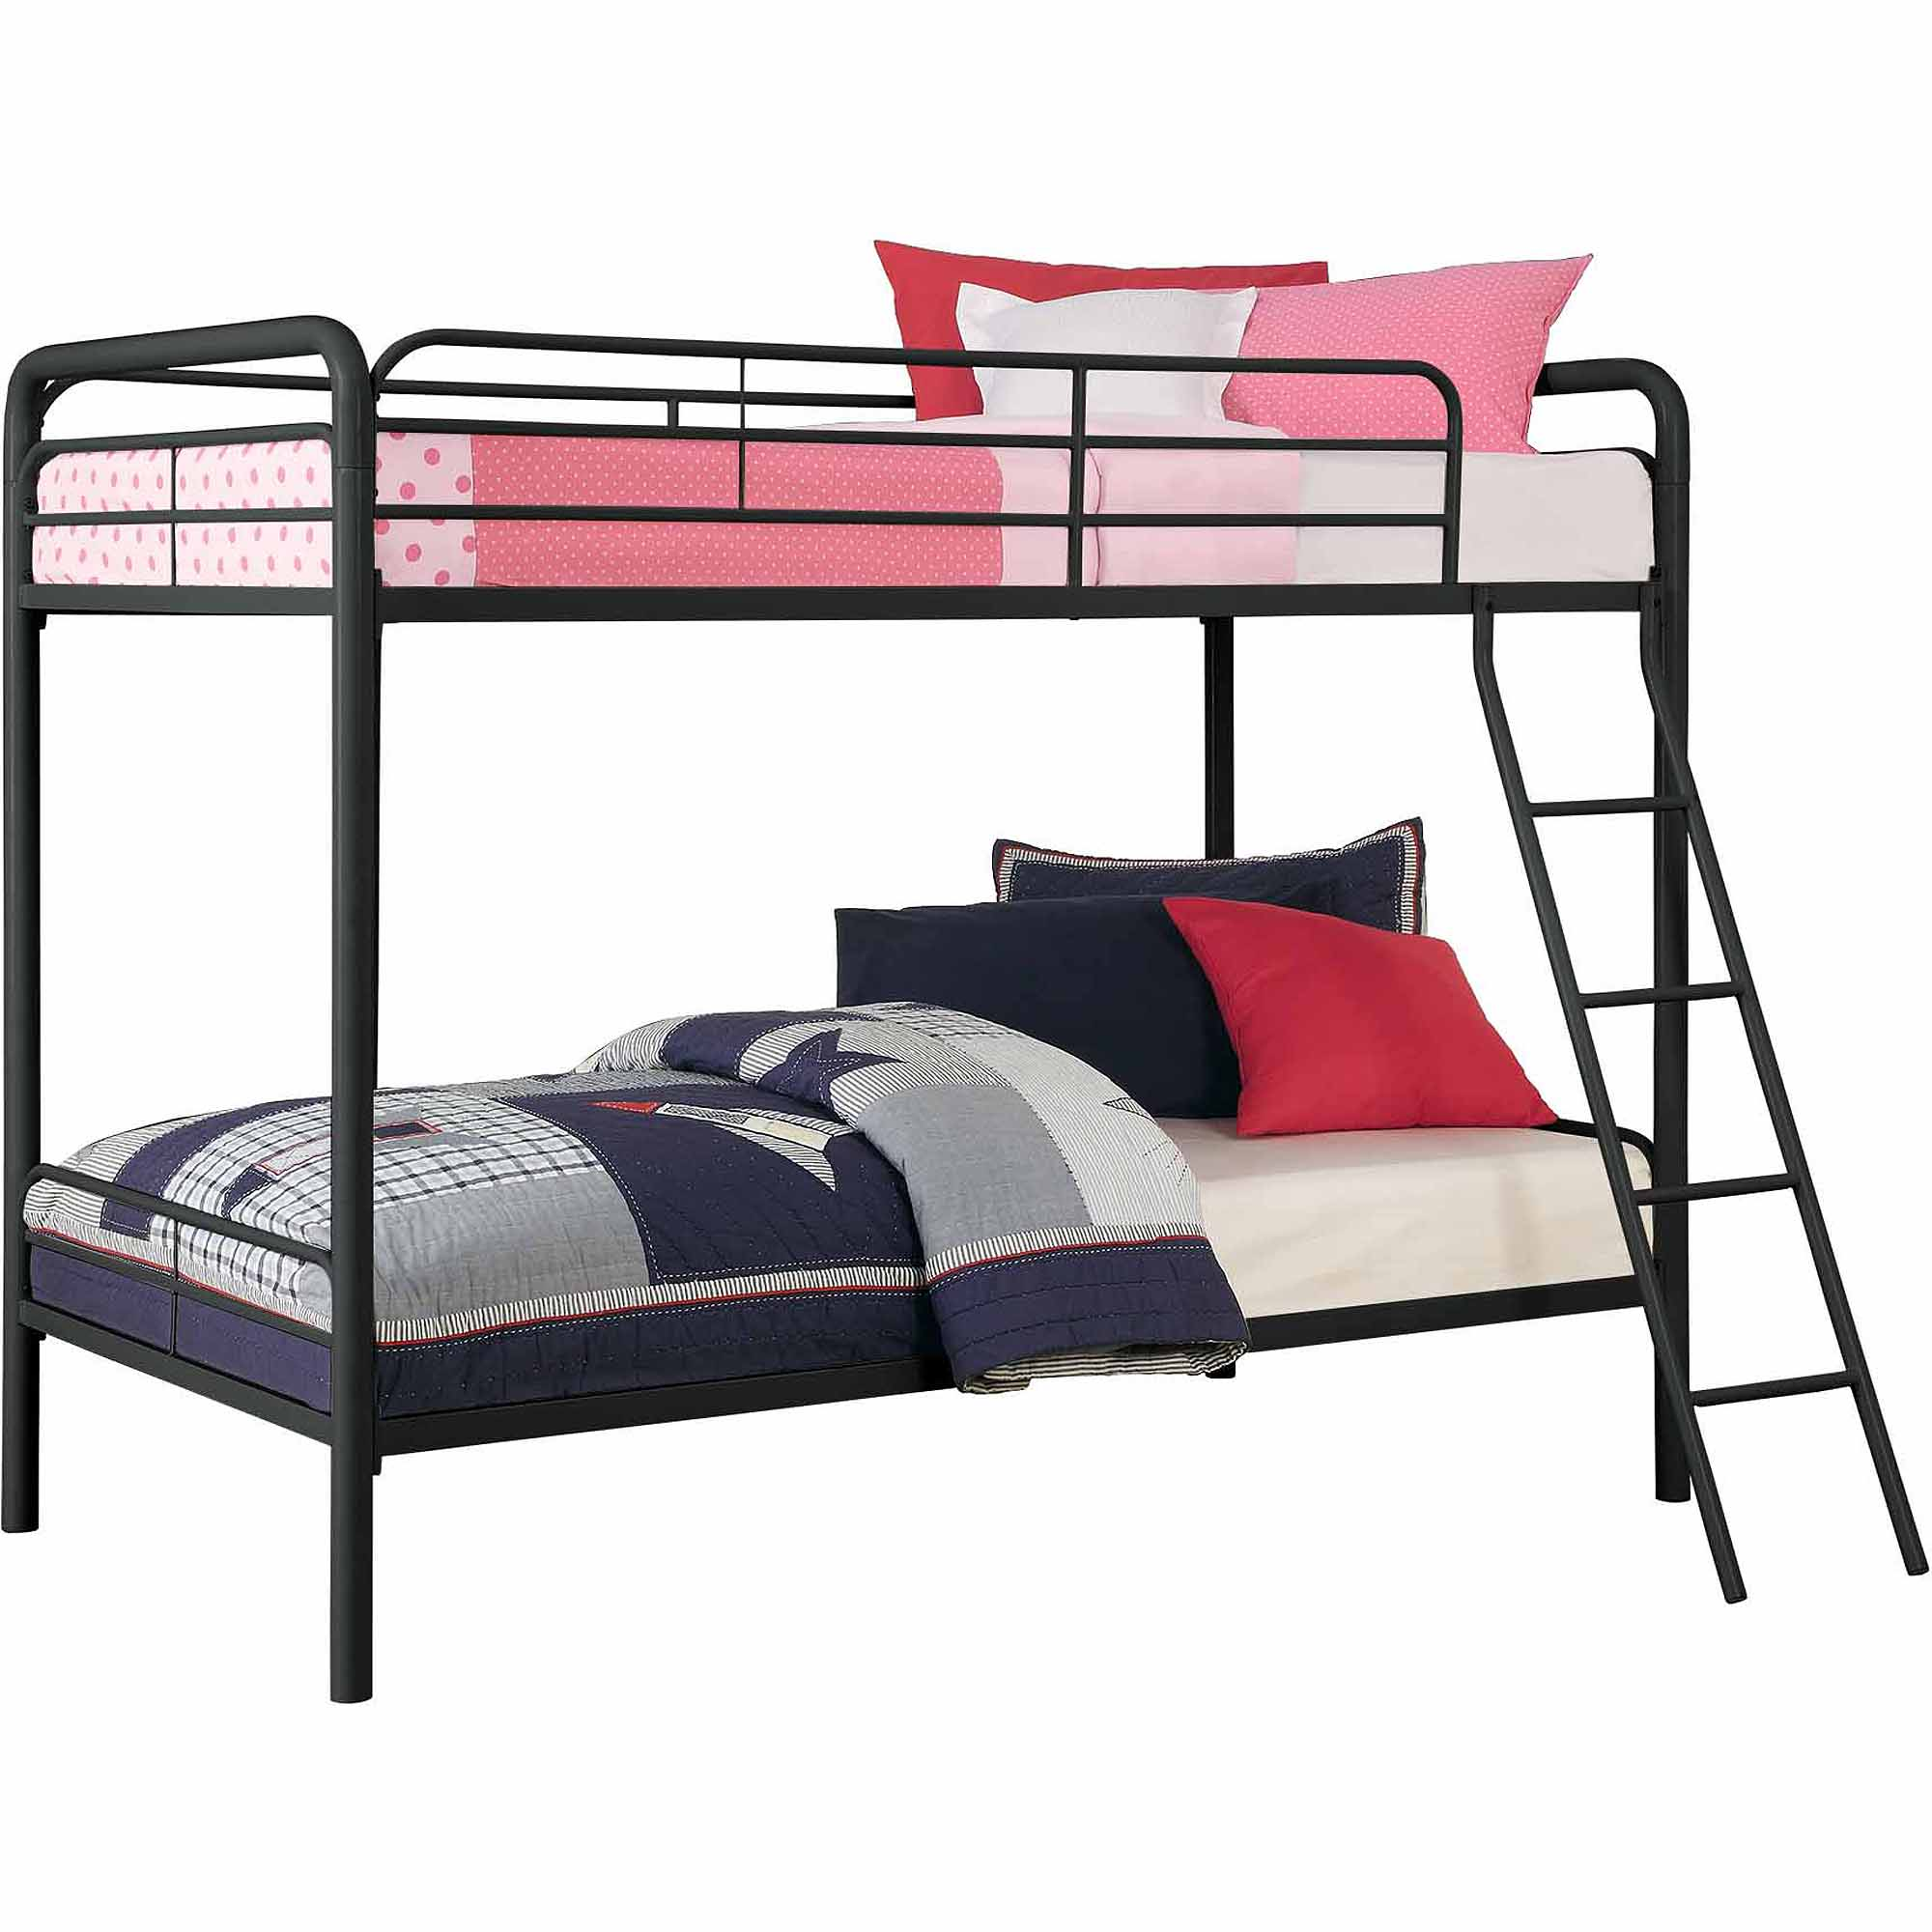 Bunk Bed Mattress Walmart